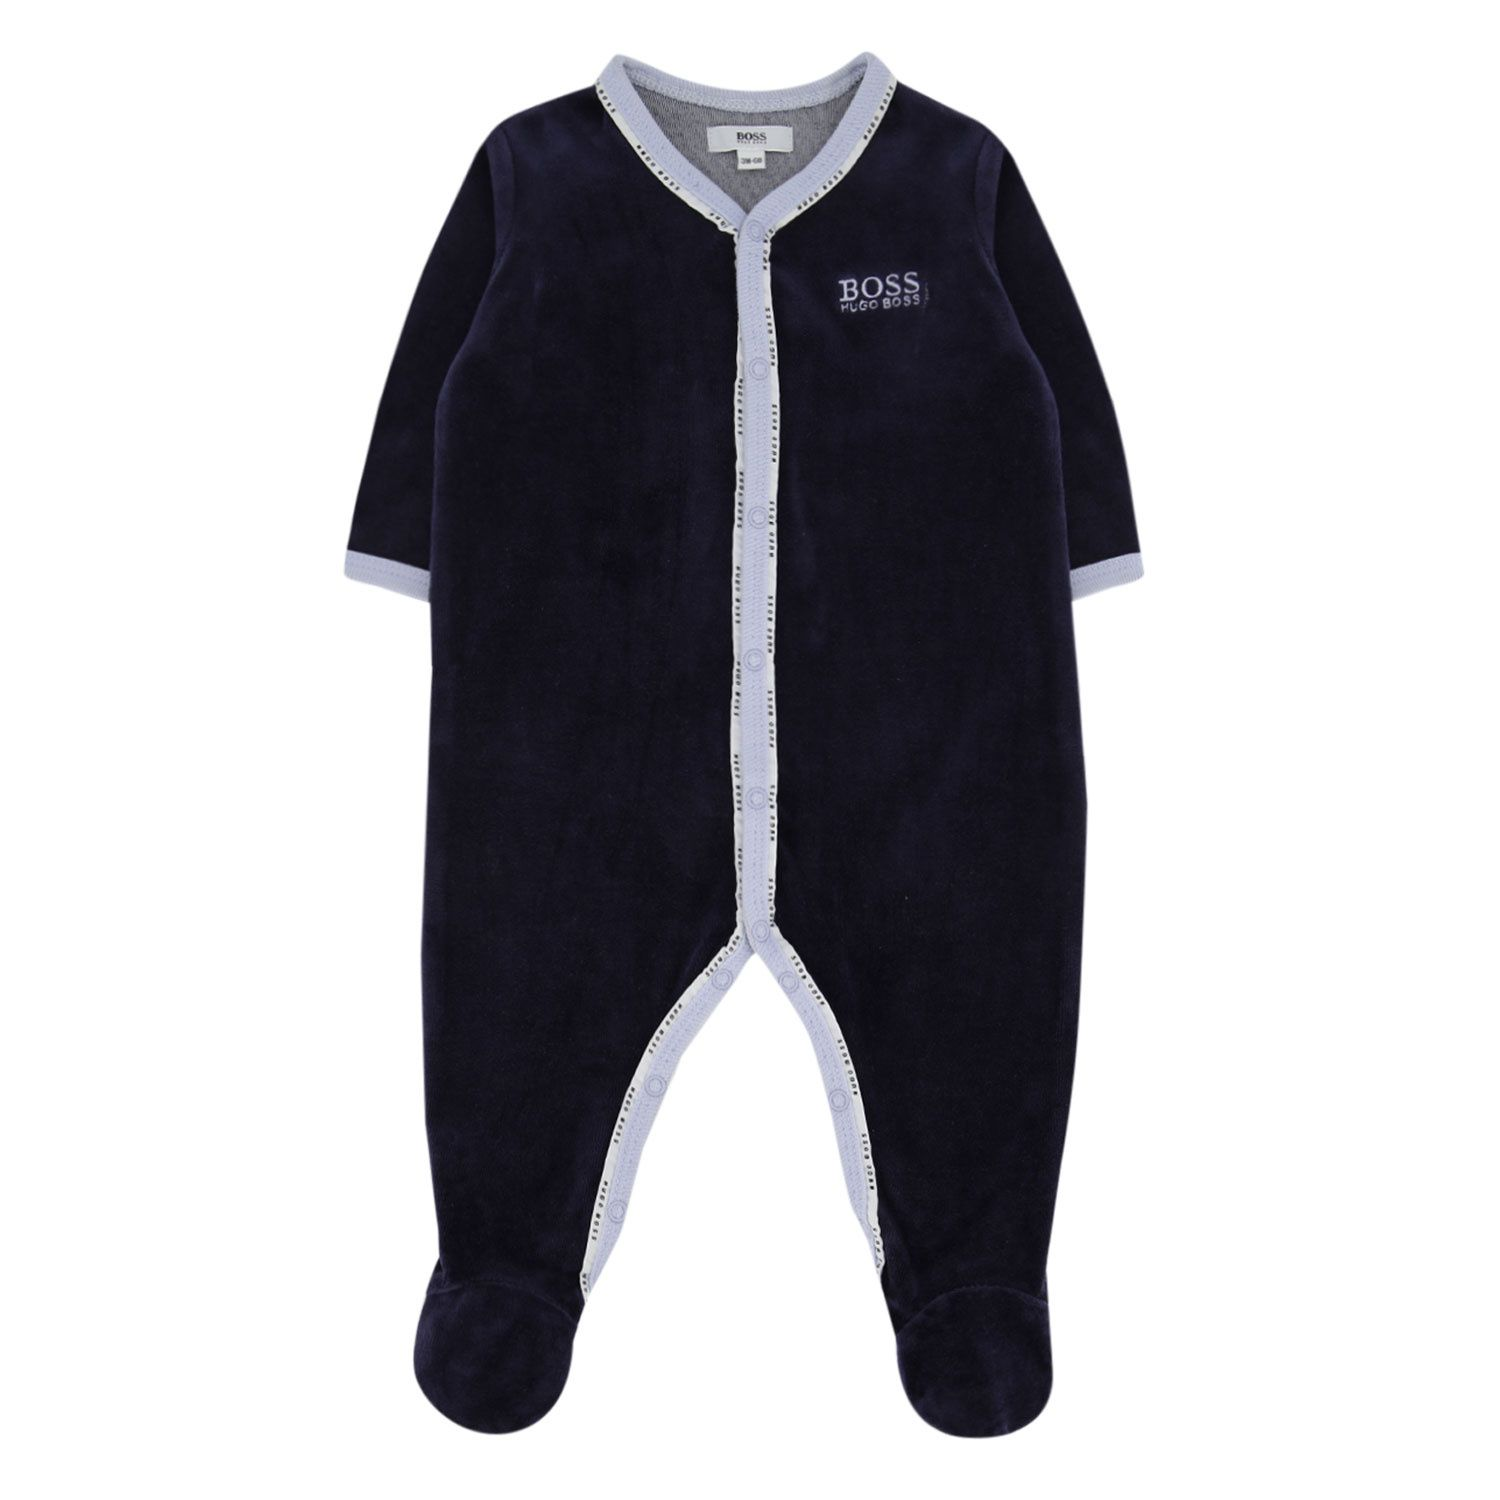 Picture of Boss J97163 baby playsuit navy